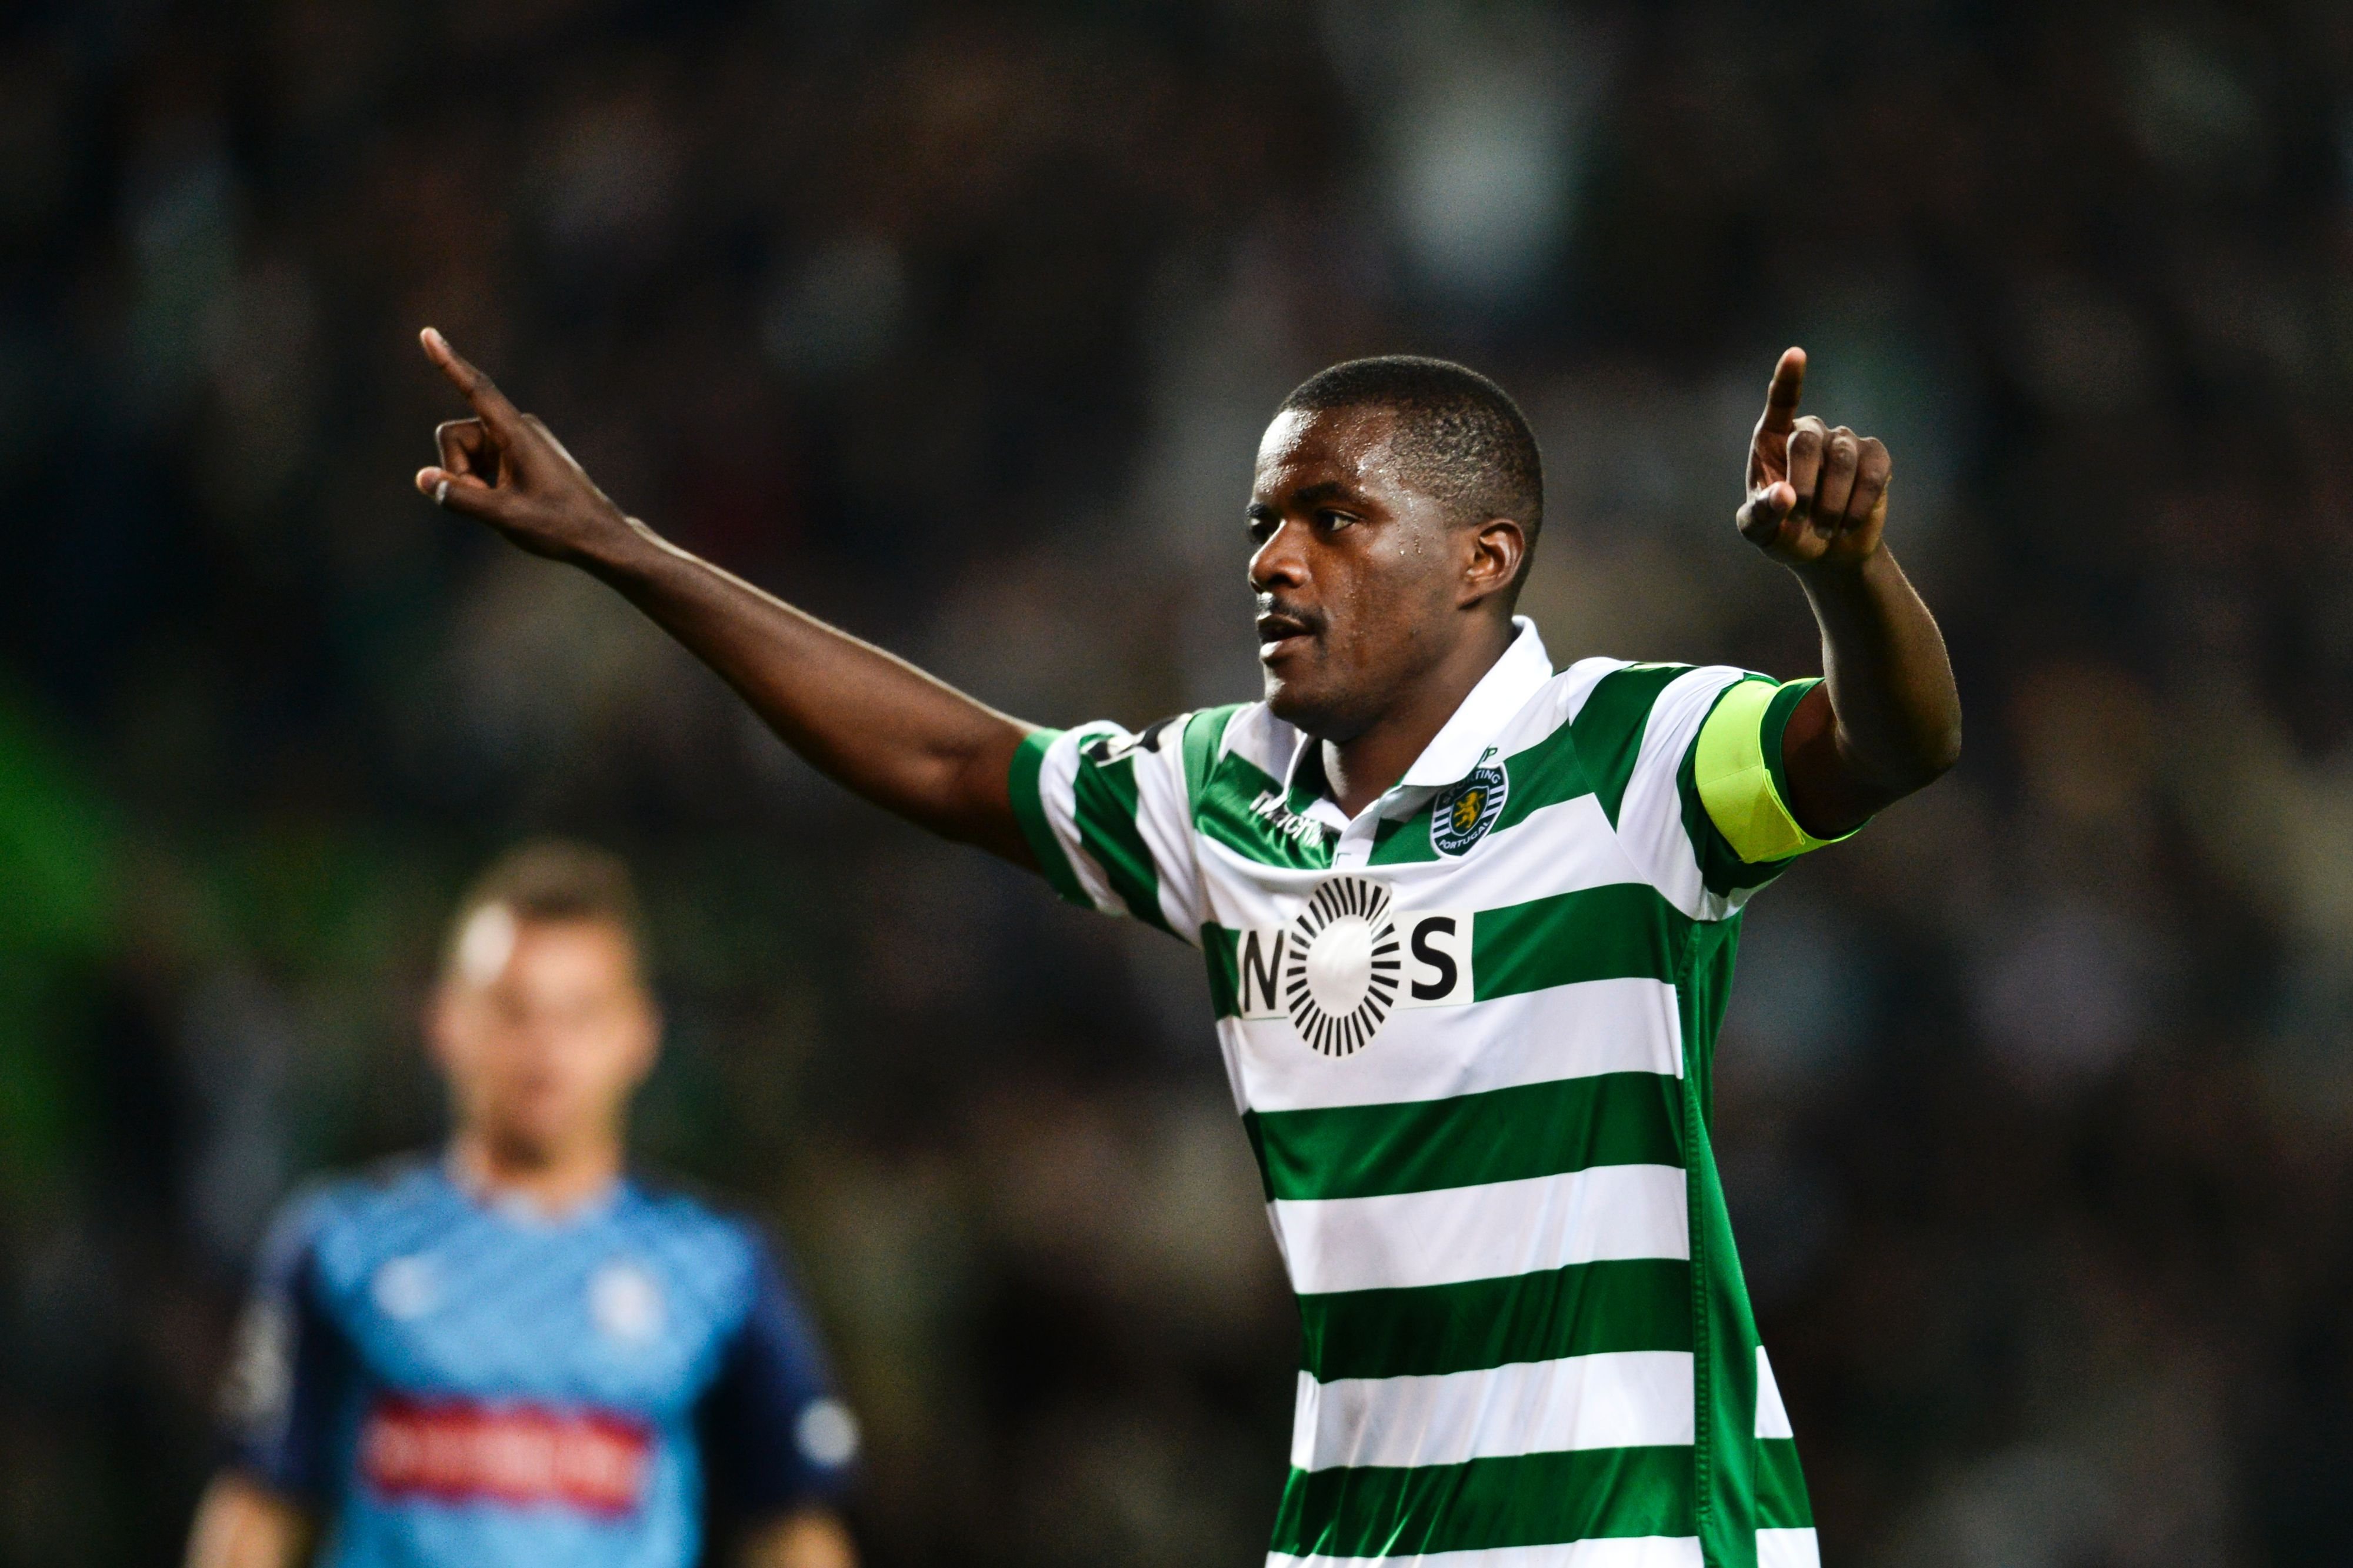 Manchester United scout William Carvalho and Joao Mario ahead of potential transfers